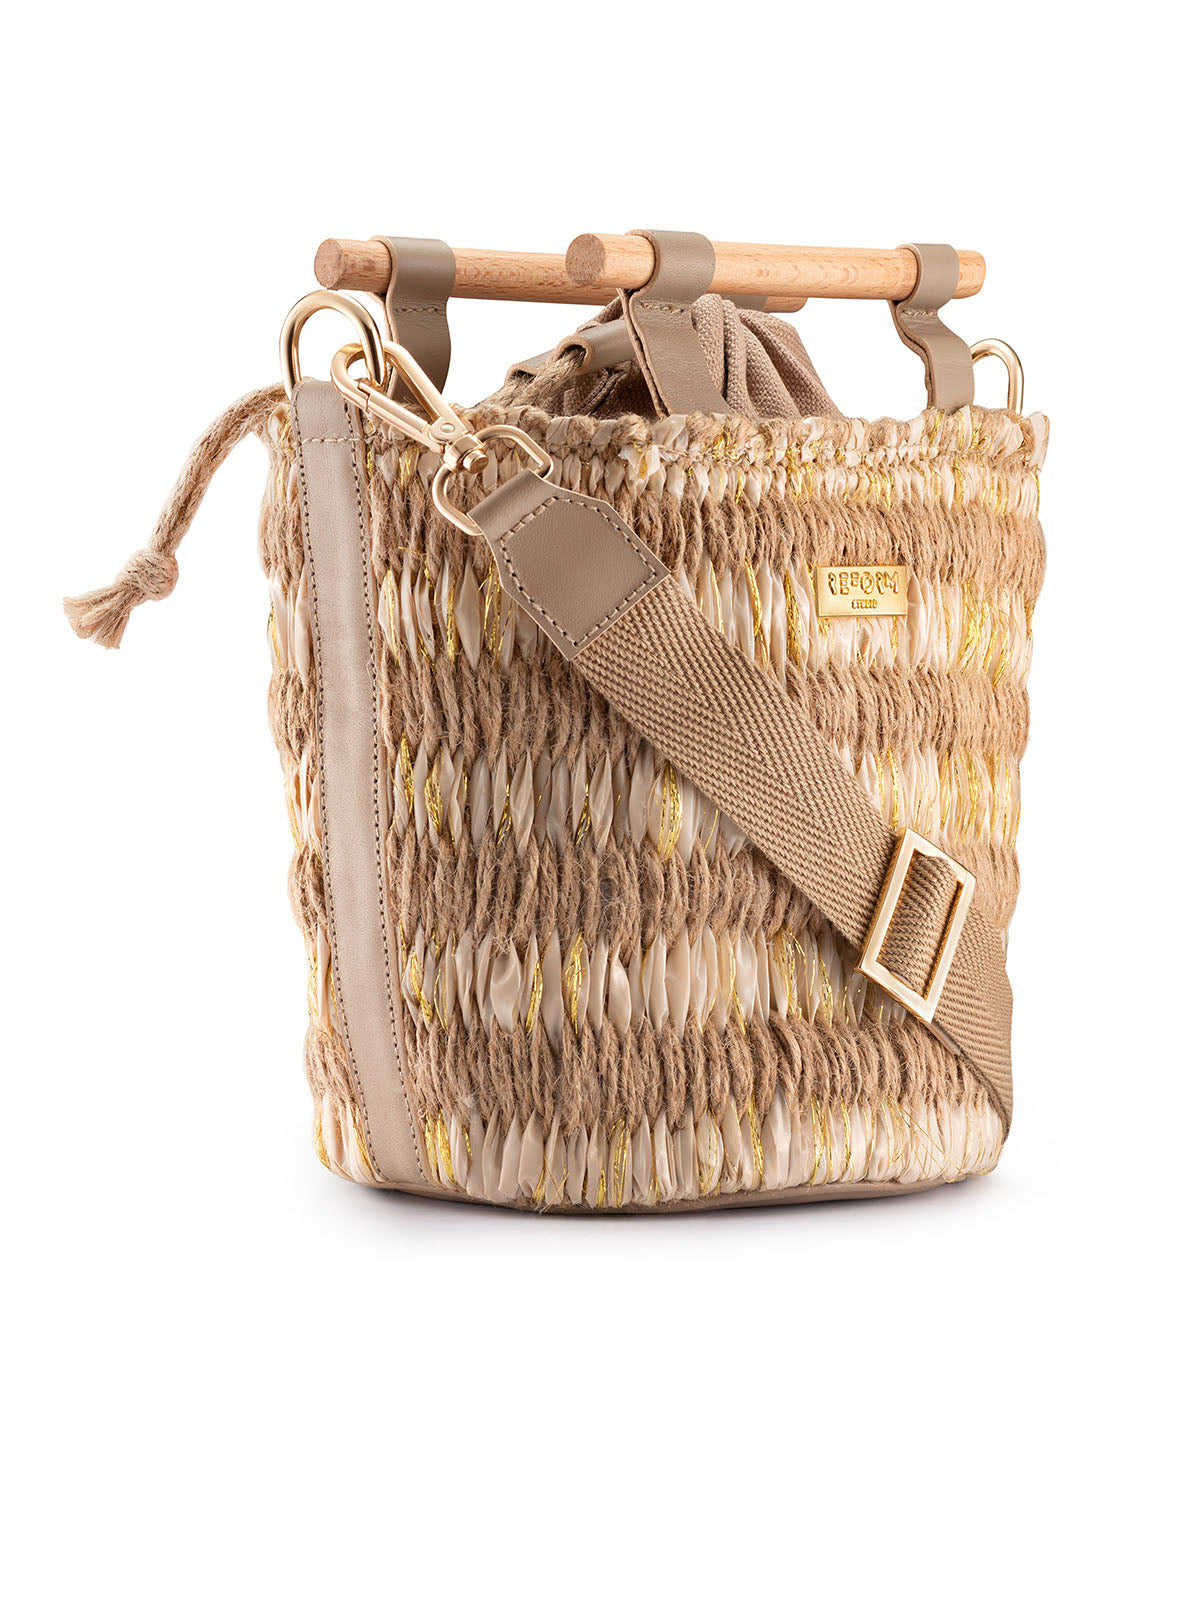 Mini Afro Basket in Beige and Gold